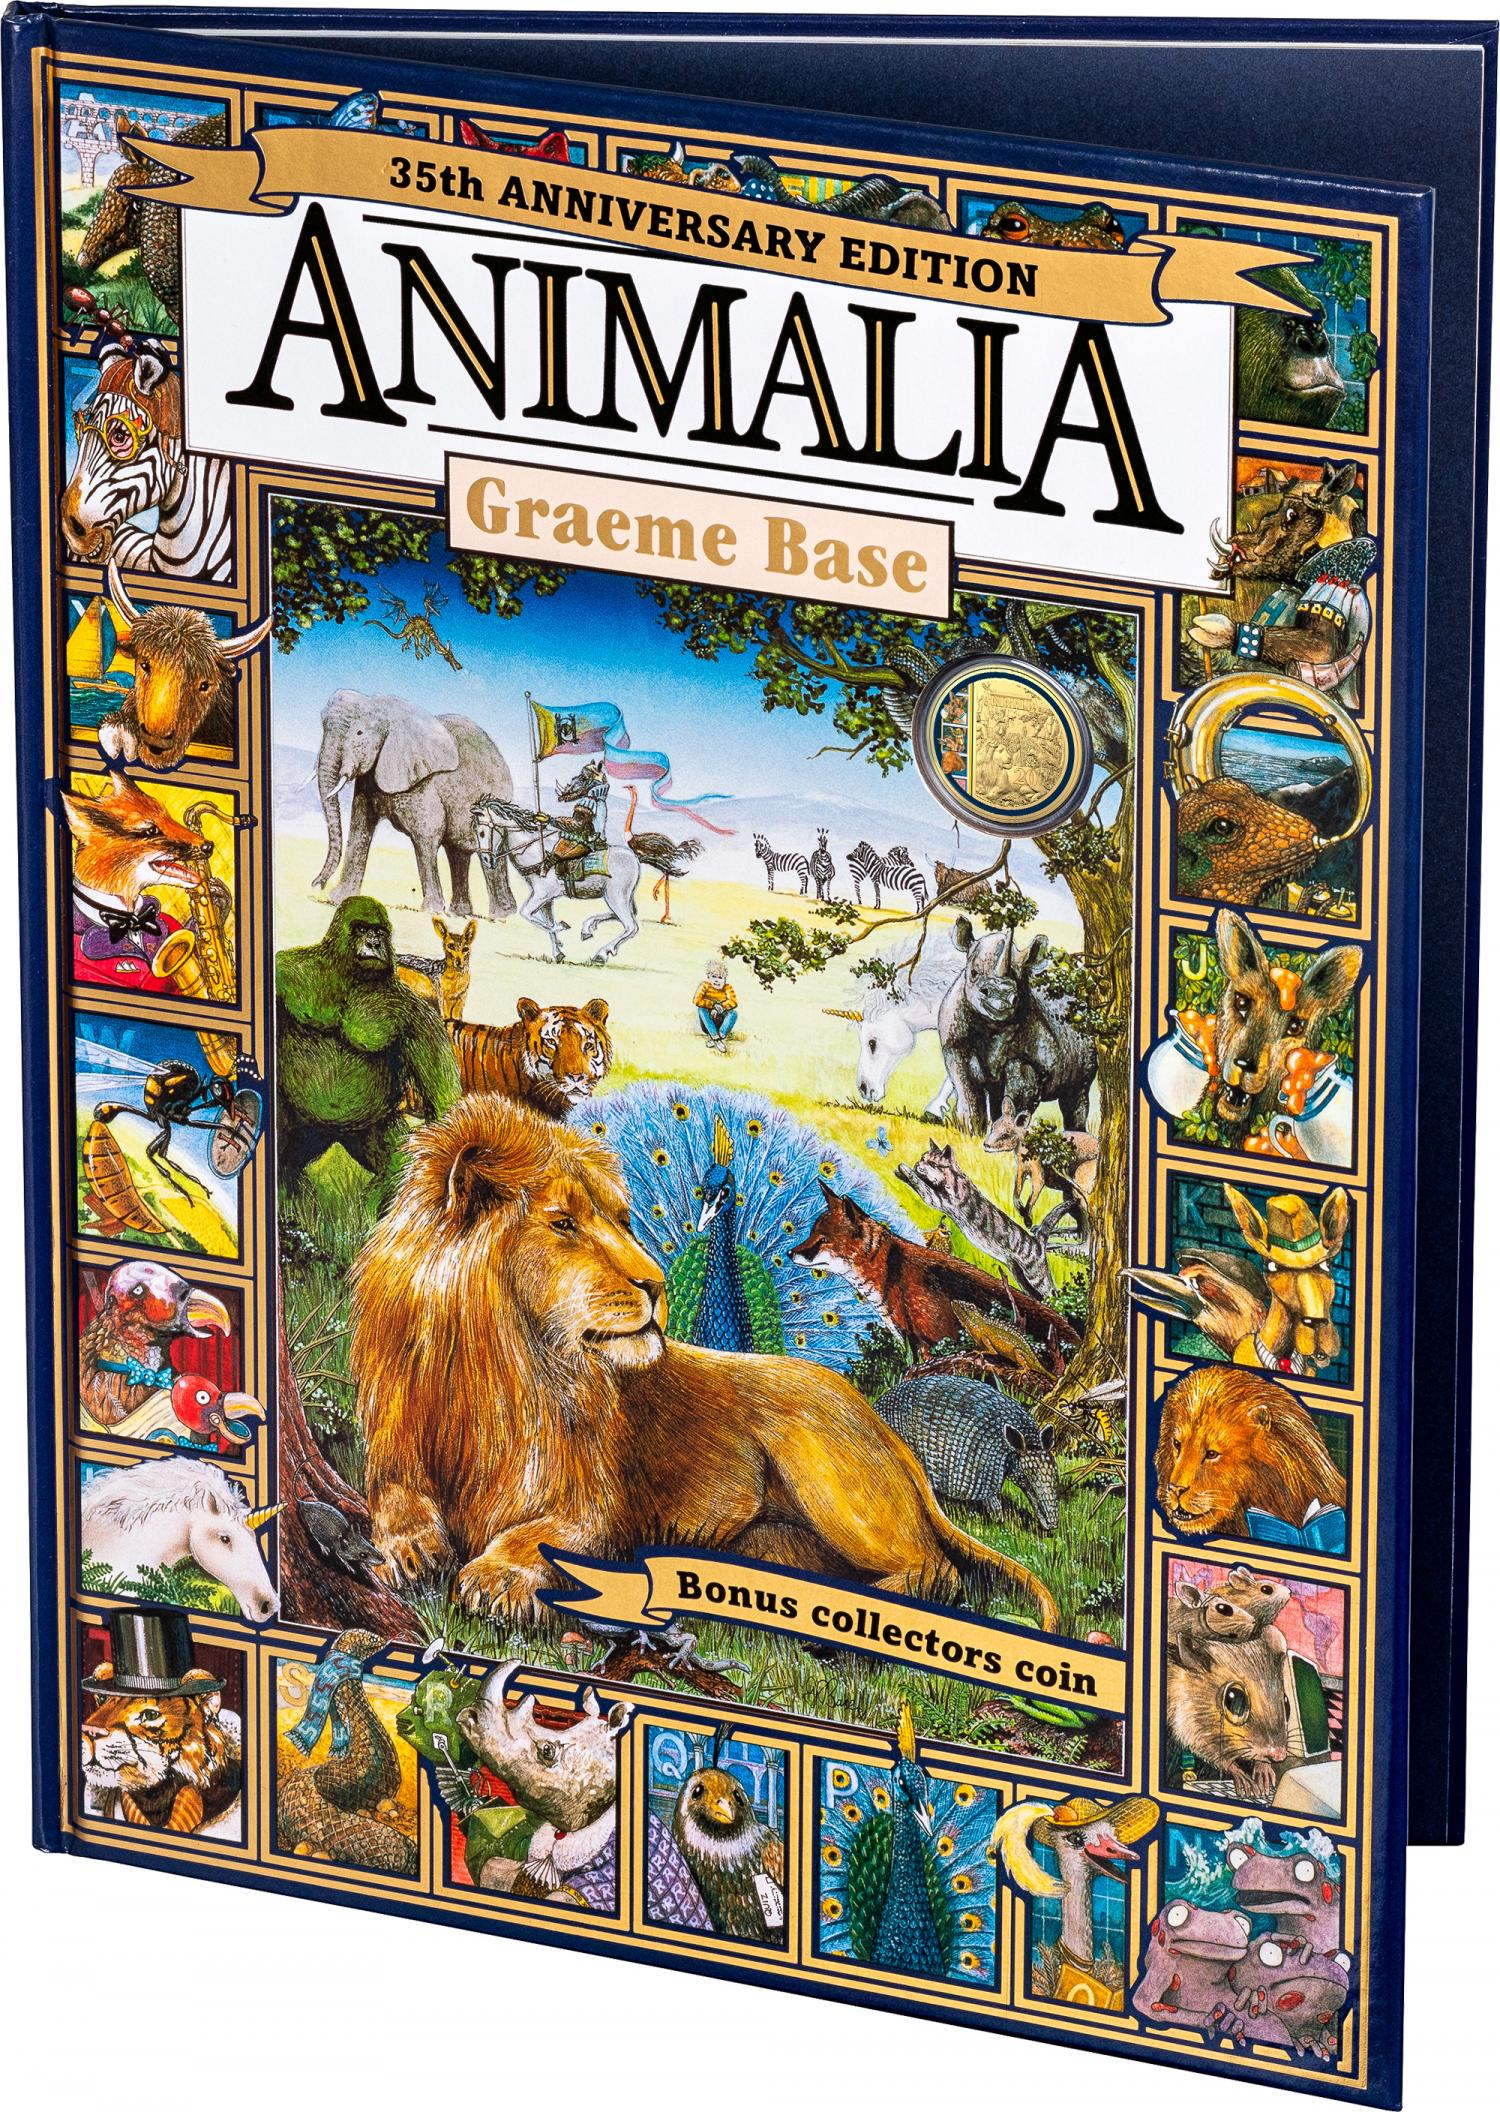 Thumbnail for 2021 20¢ 35th Anniversary of Animalia CuNi Gold Plated Colour Printed UNC Coin in a Deluxe Hardcover Anniversary Edition of Animalia